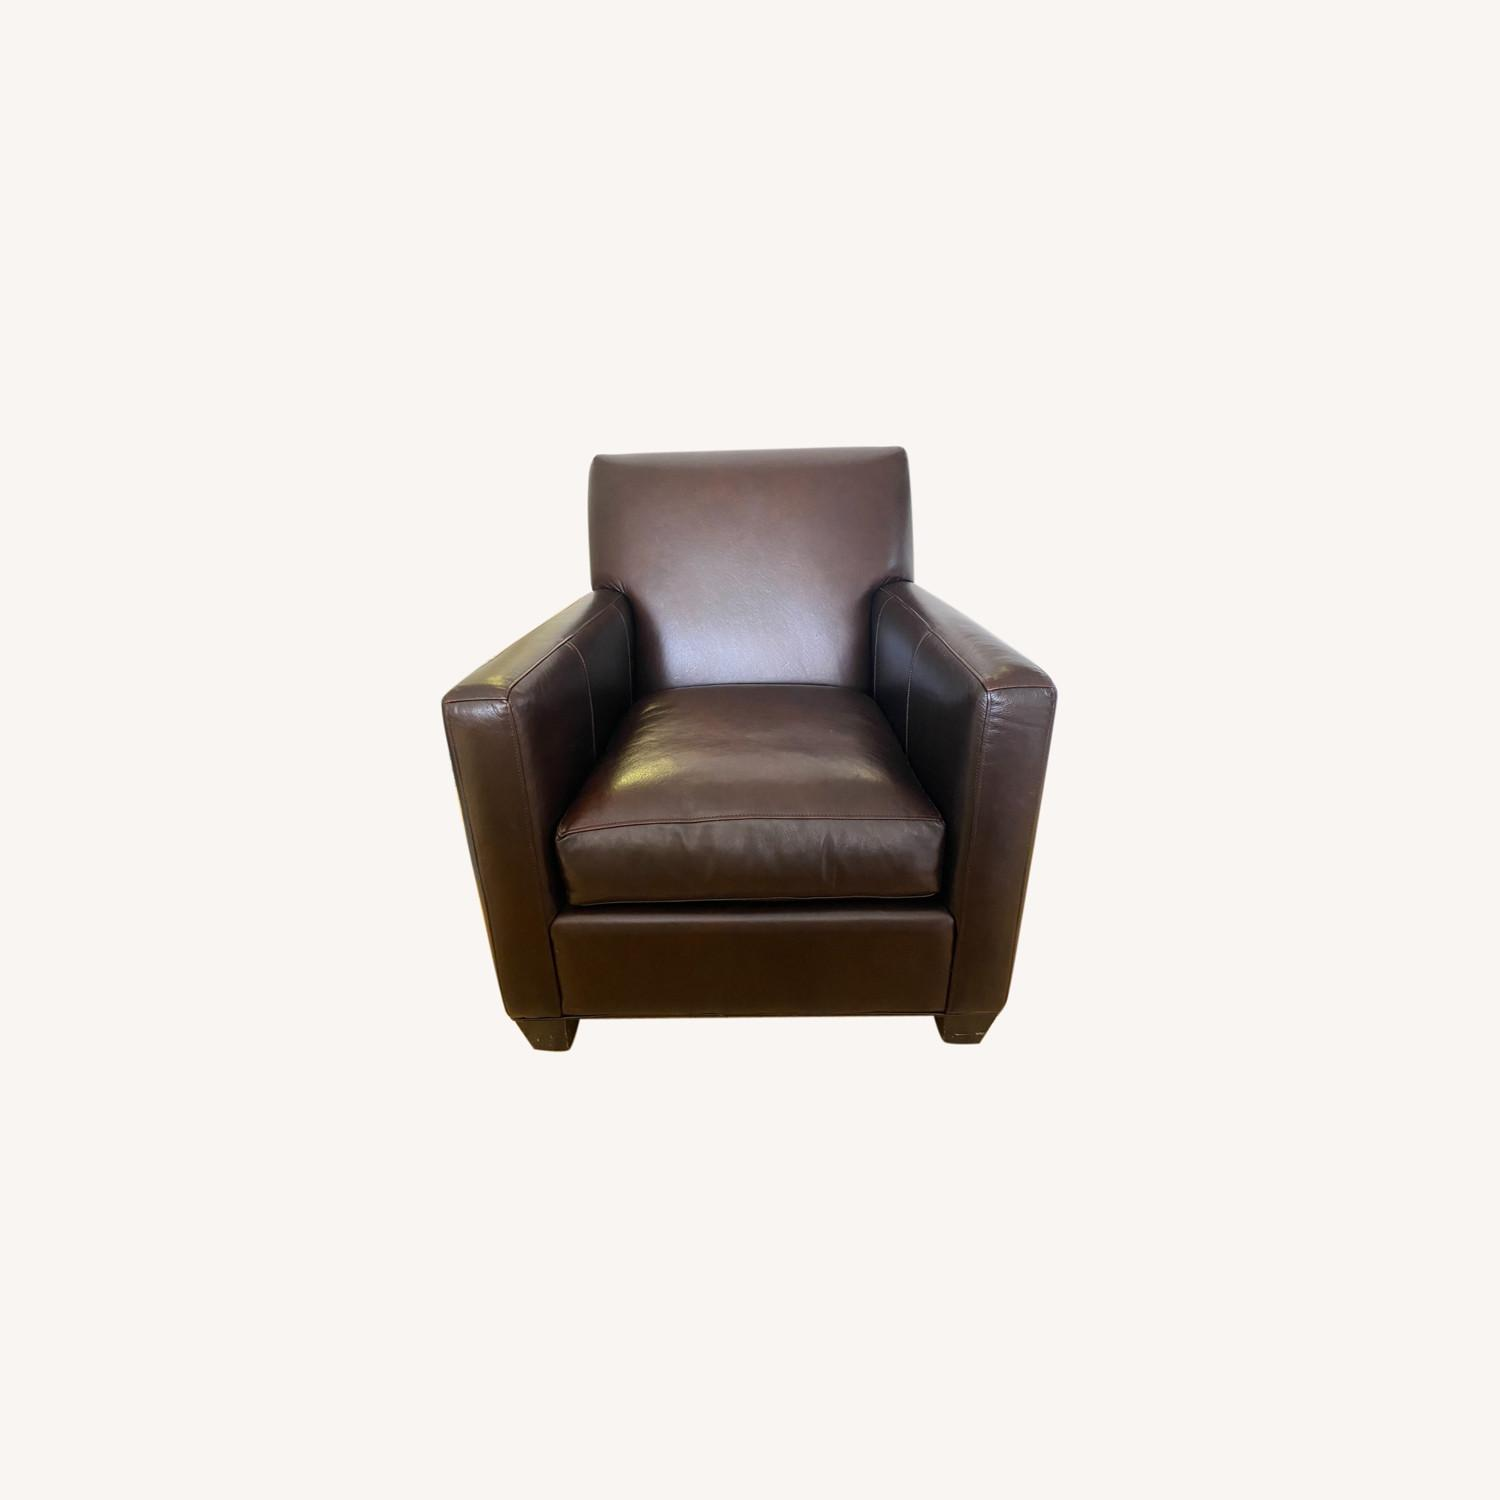 Crate & Barrel Leather Chair - image-0